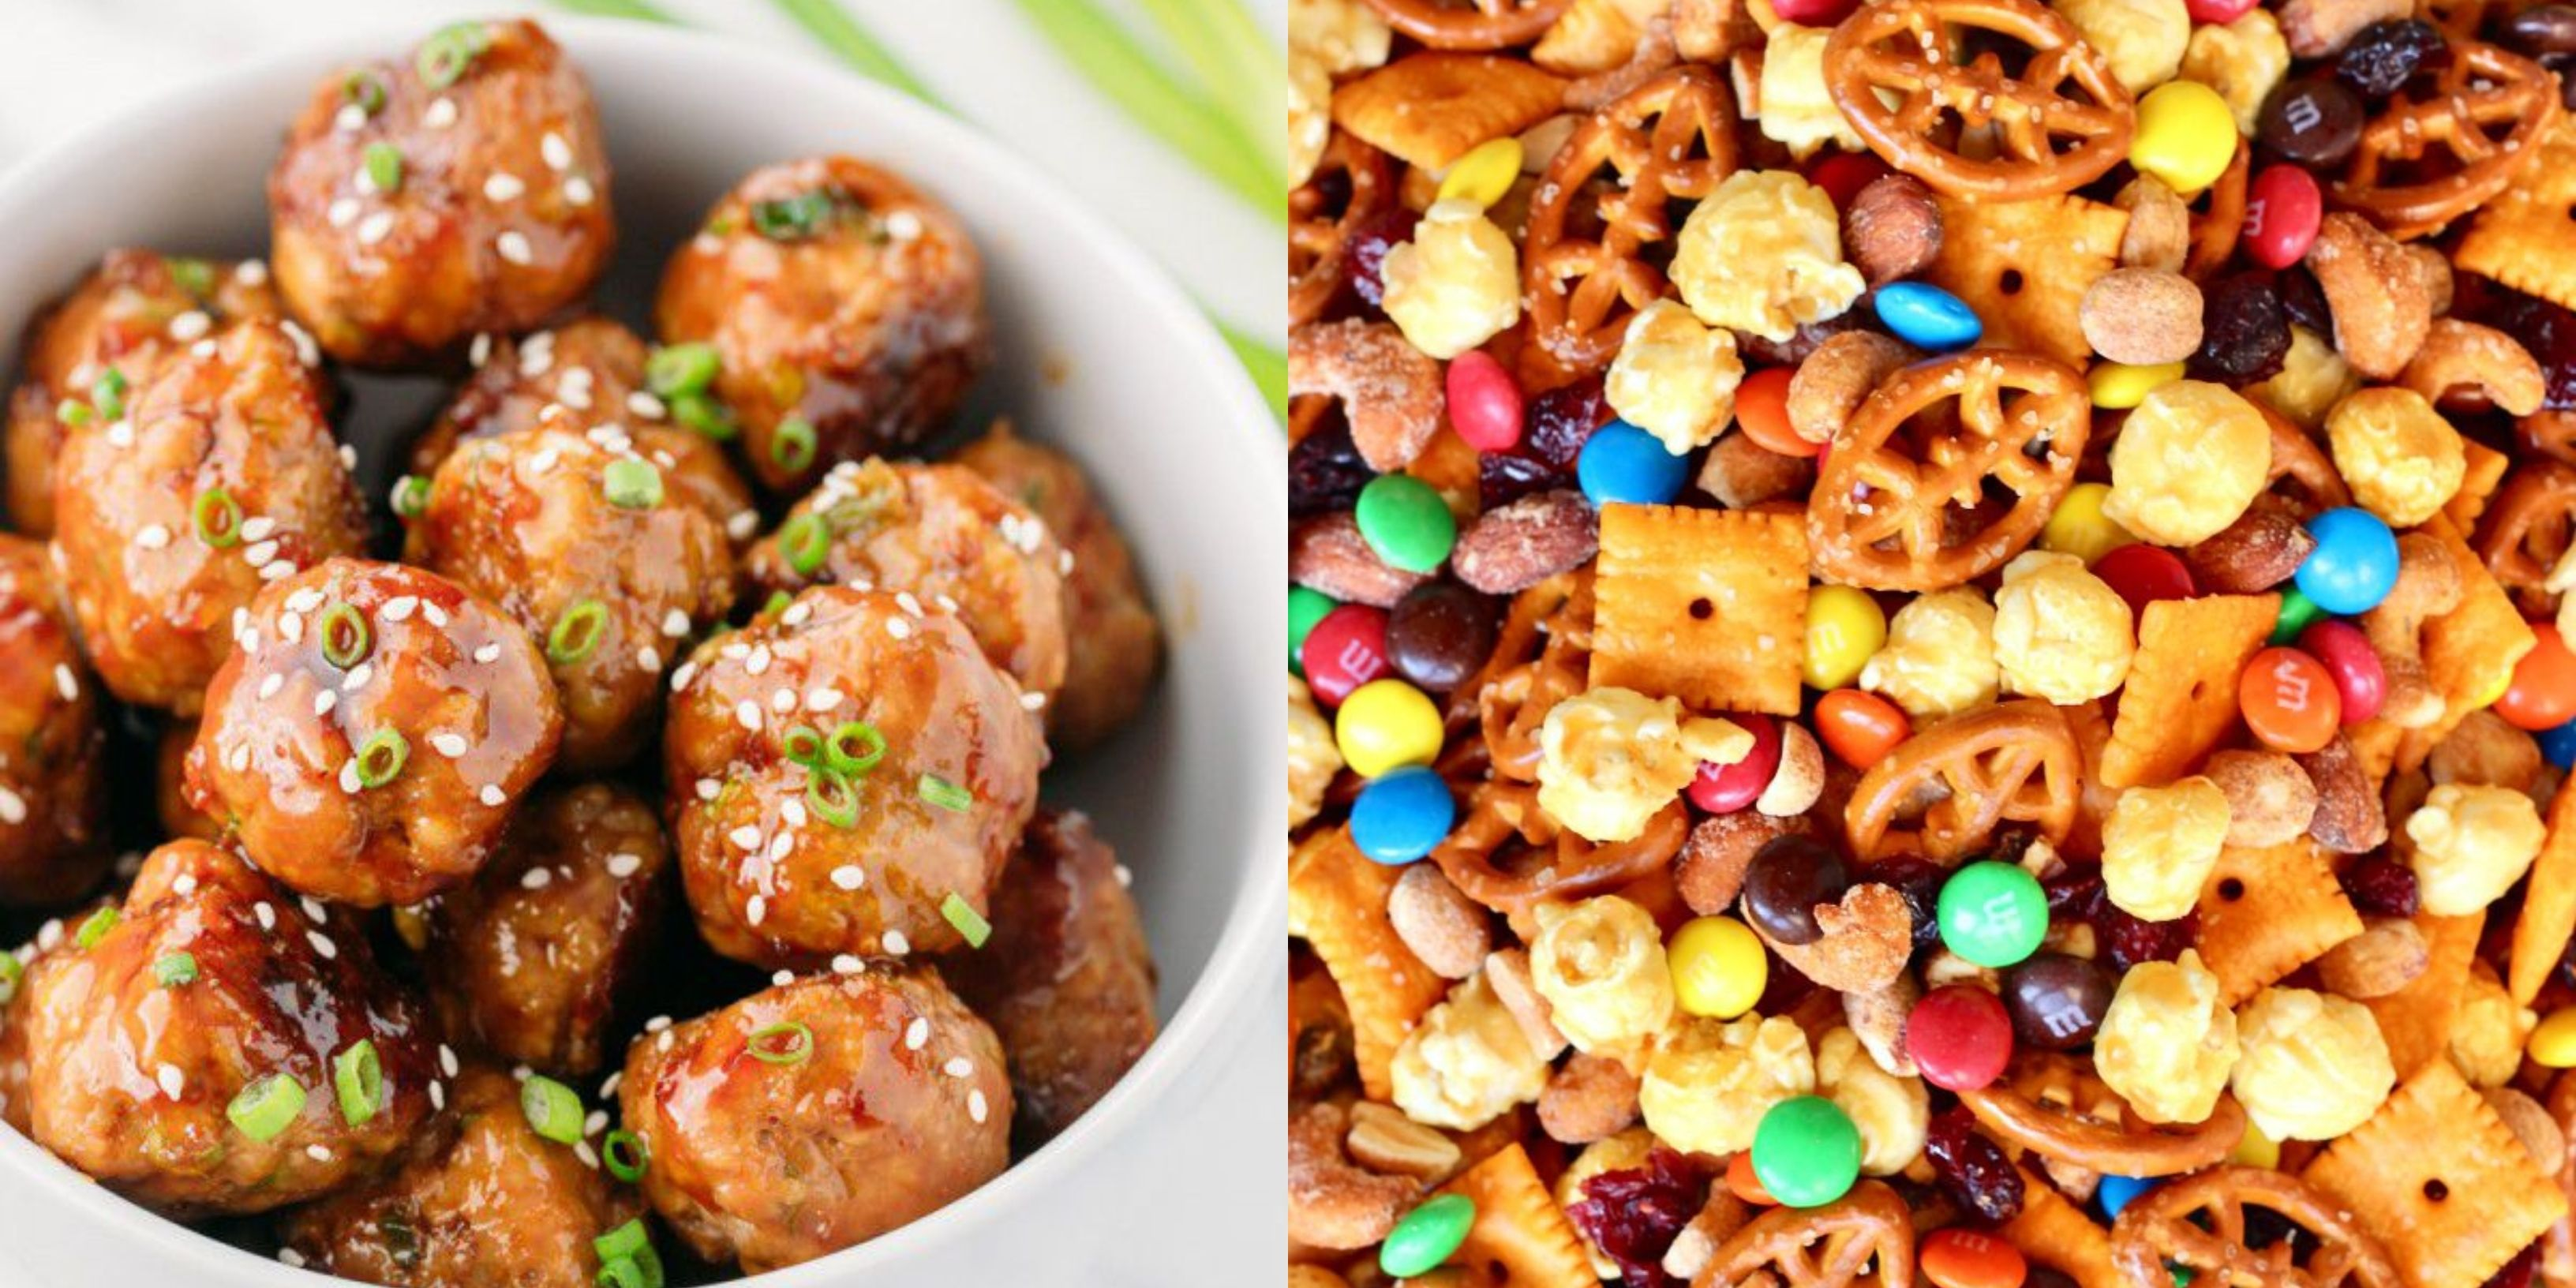 87 Super Bowl Recipes That Will Have Everyone Feeling Like a Winner